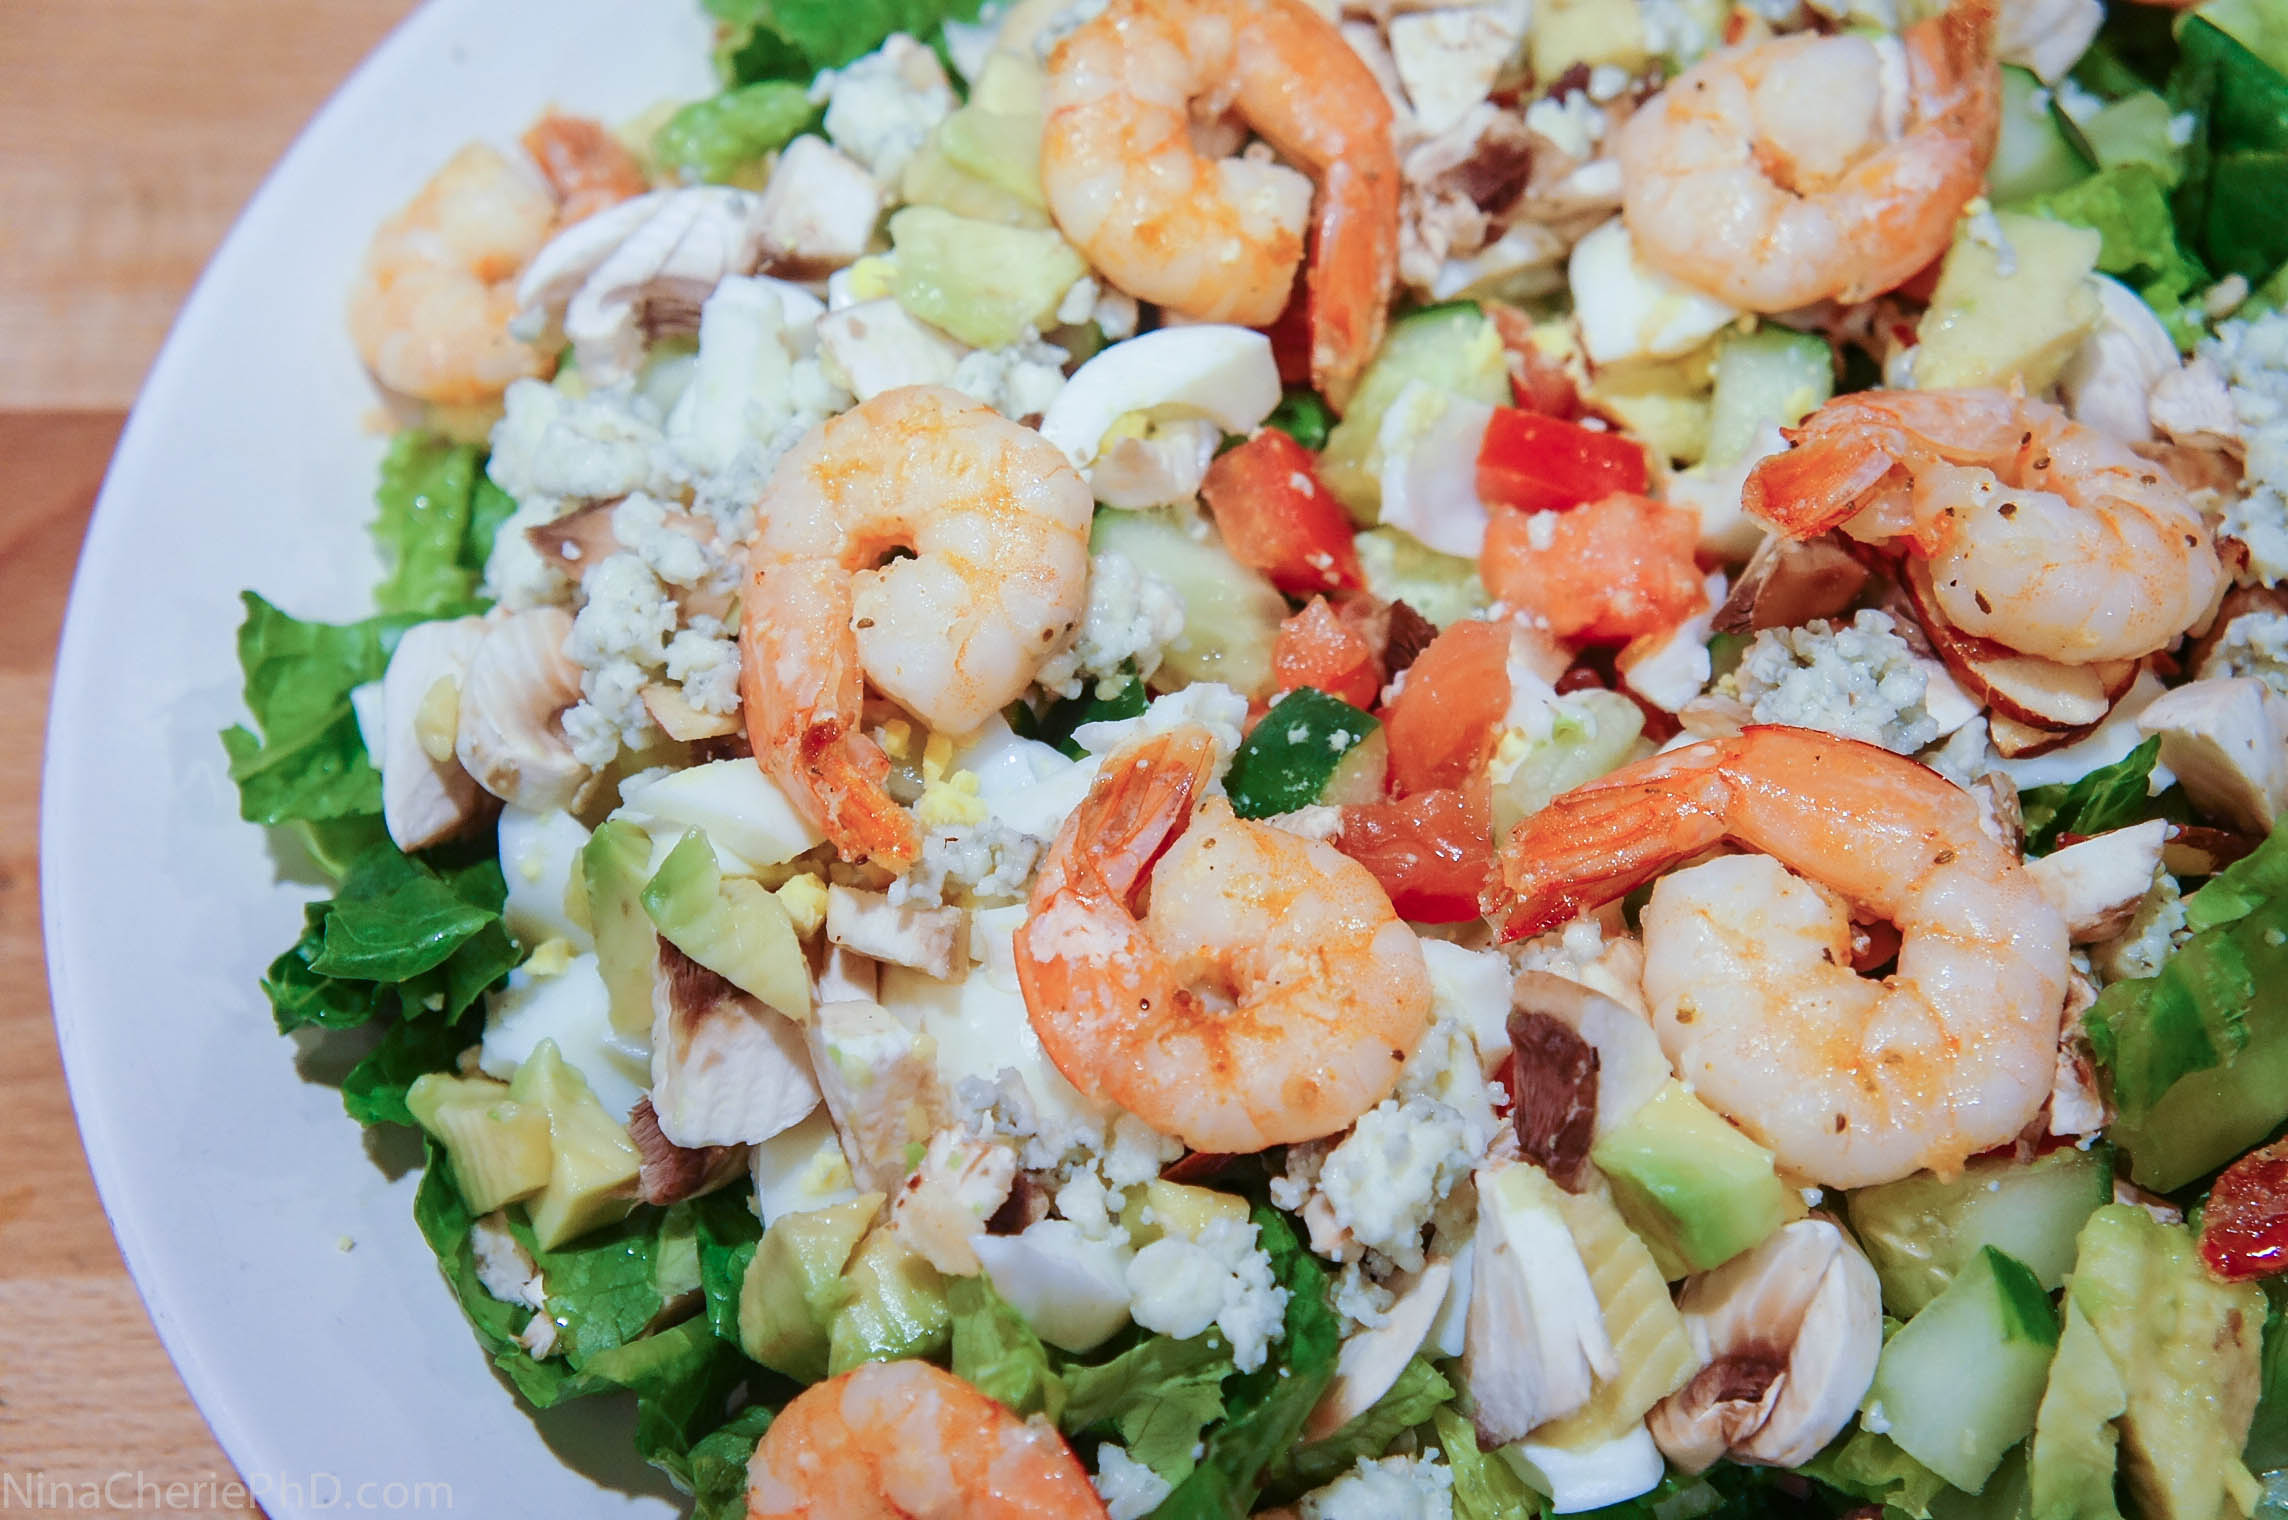 Shrimp_and_Romaine_Salad_with_Avocado_Nina_Cherie_PhD